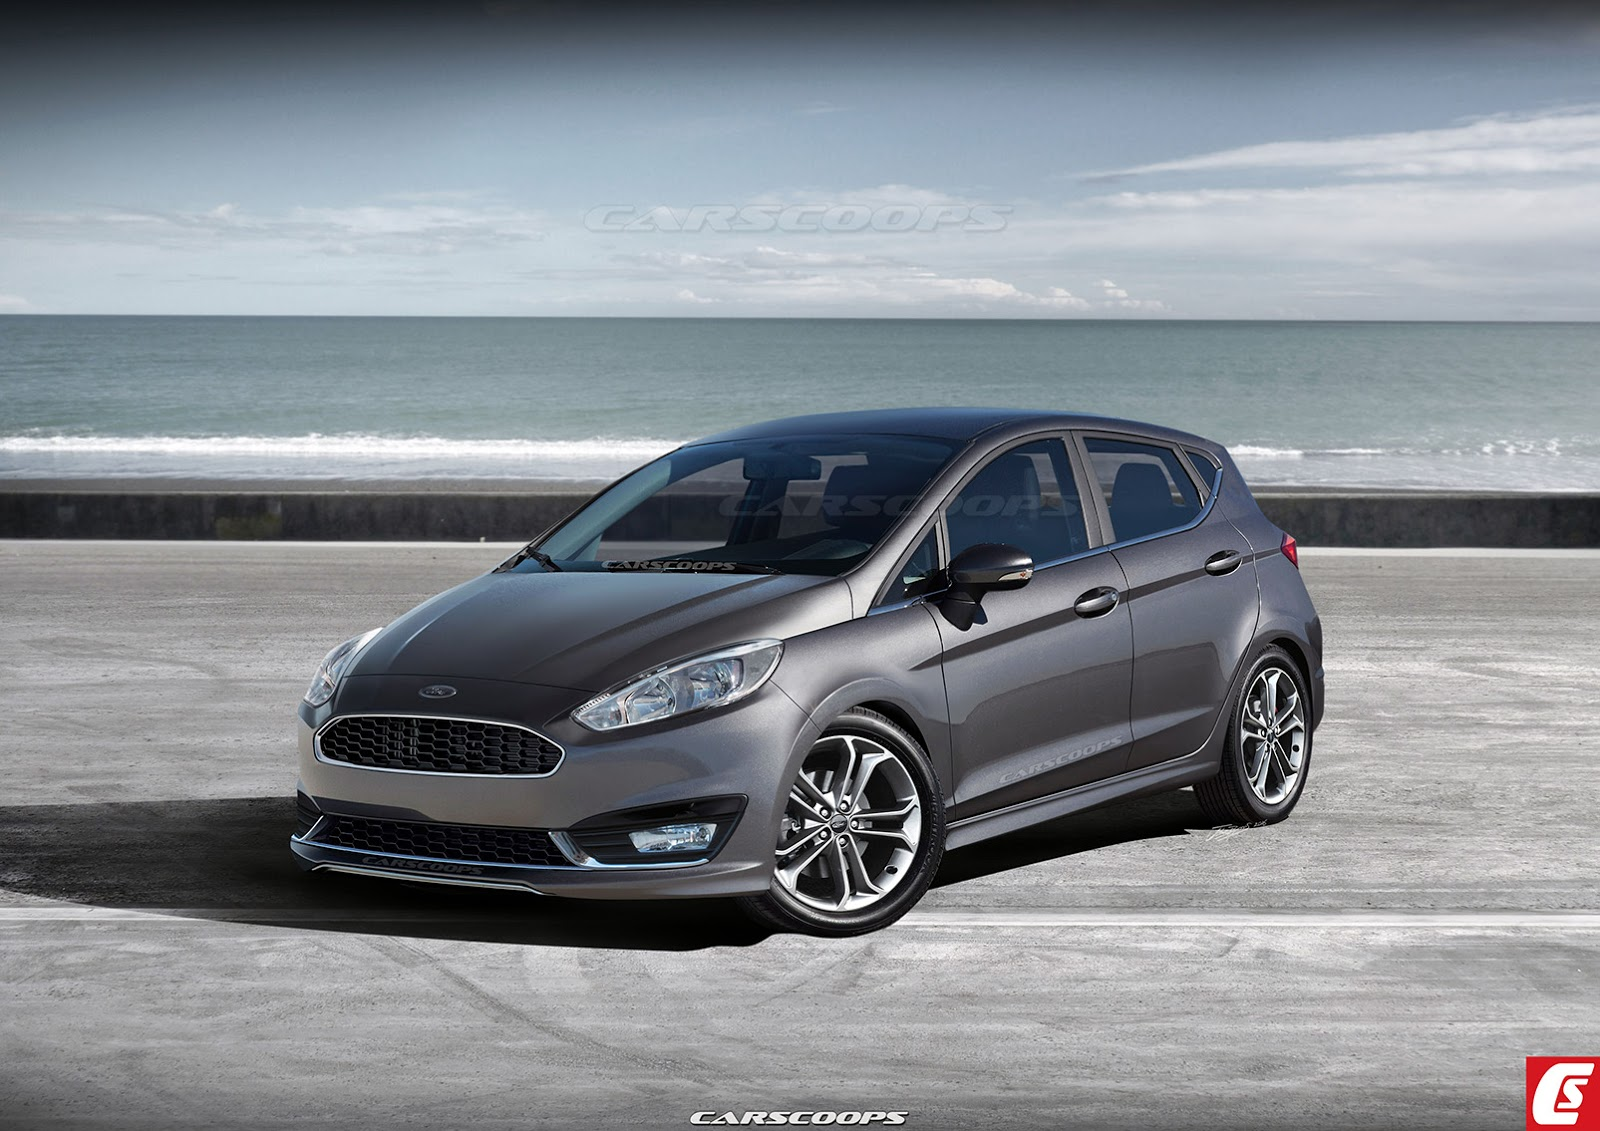 ford puma 2017  Next-Gen Ford Fiesta To Take A Step Up In Design And Luxury ...